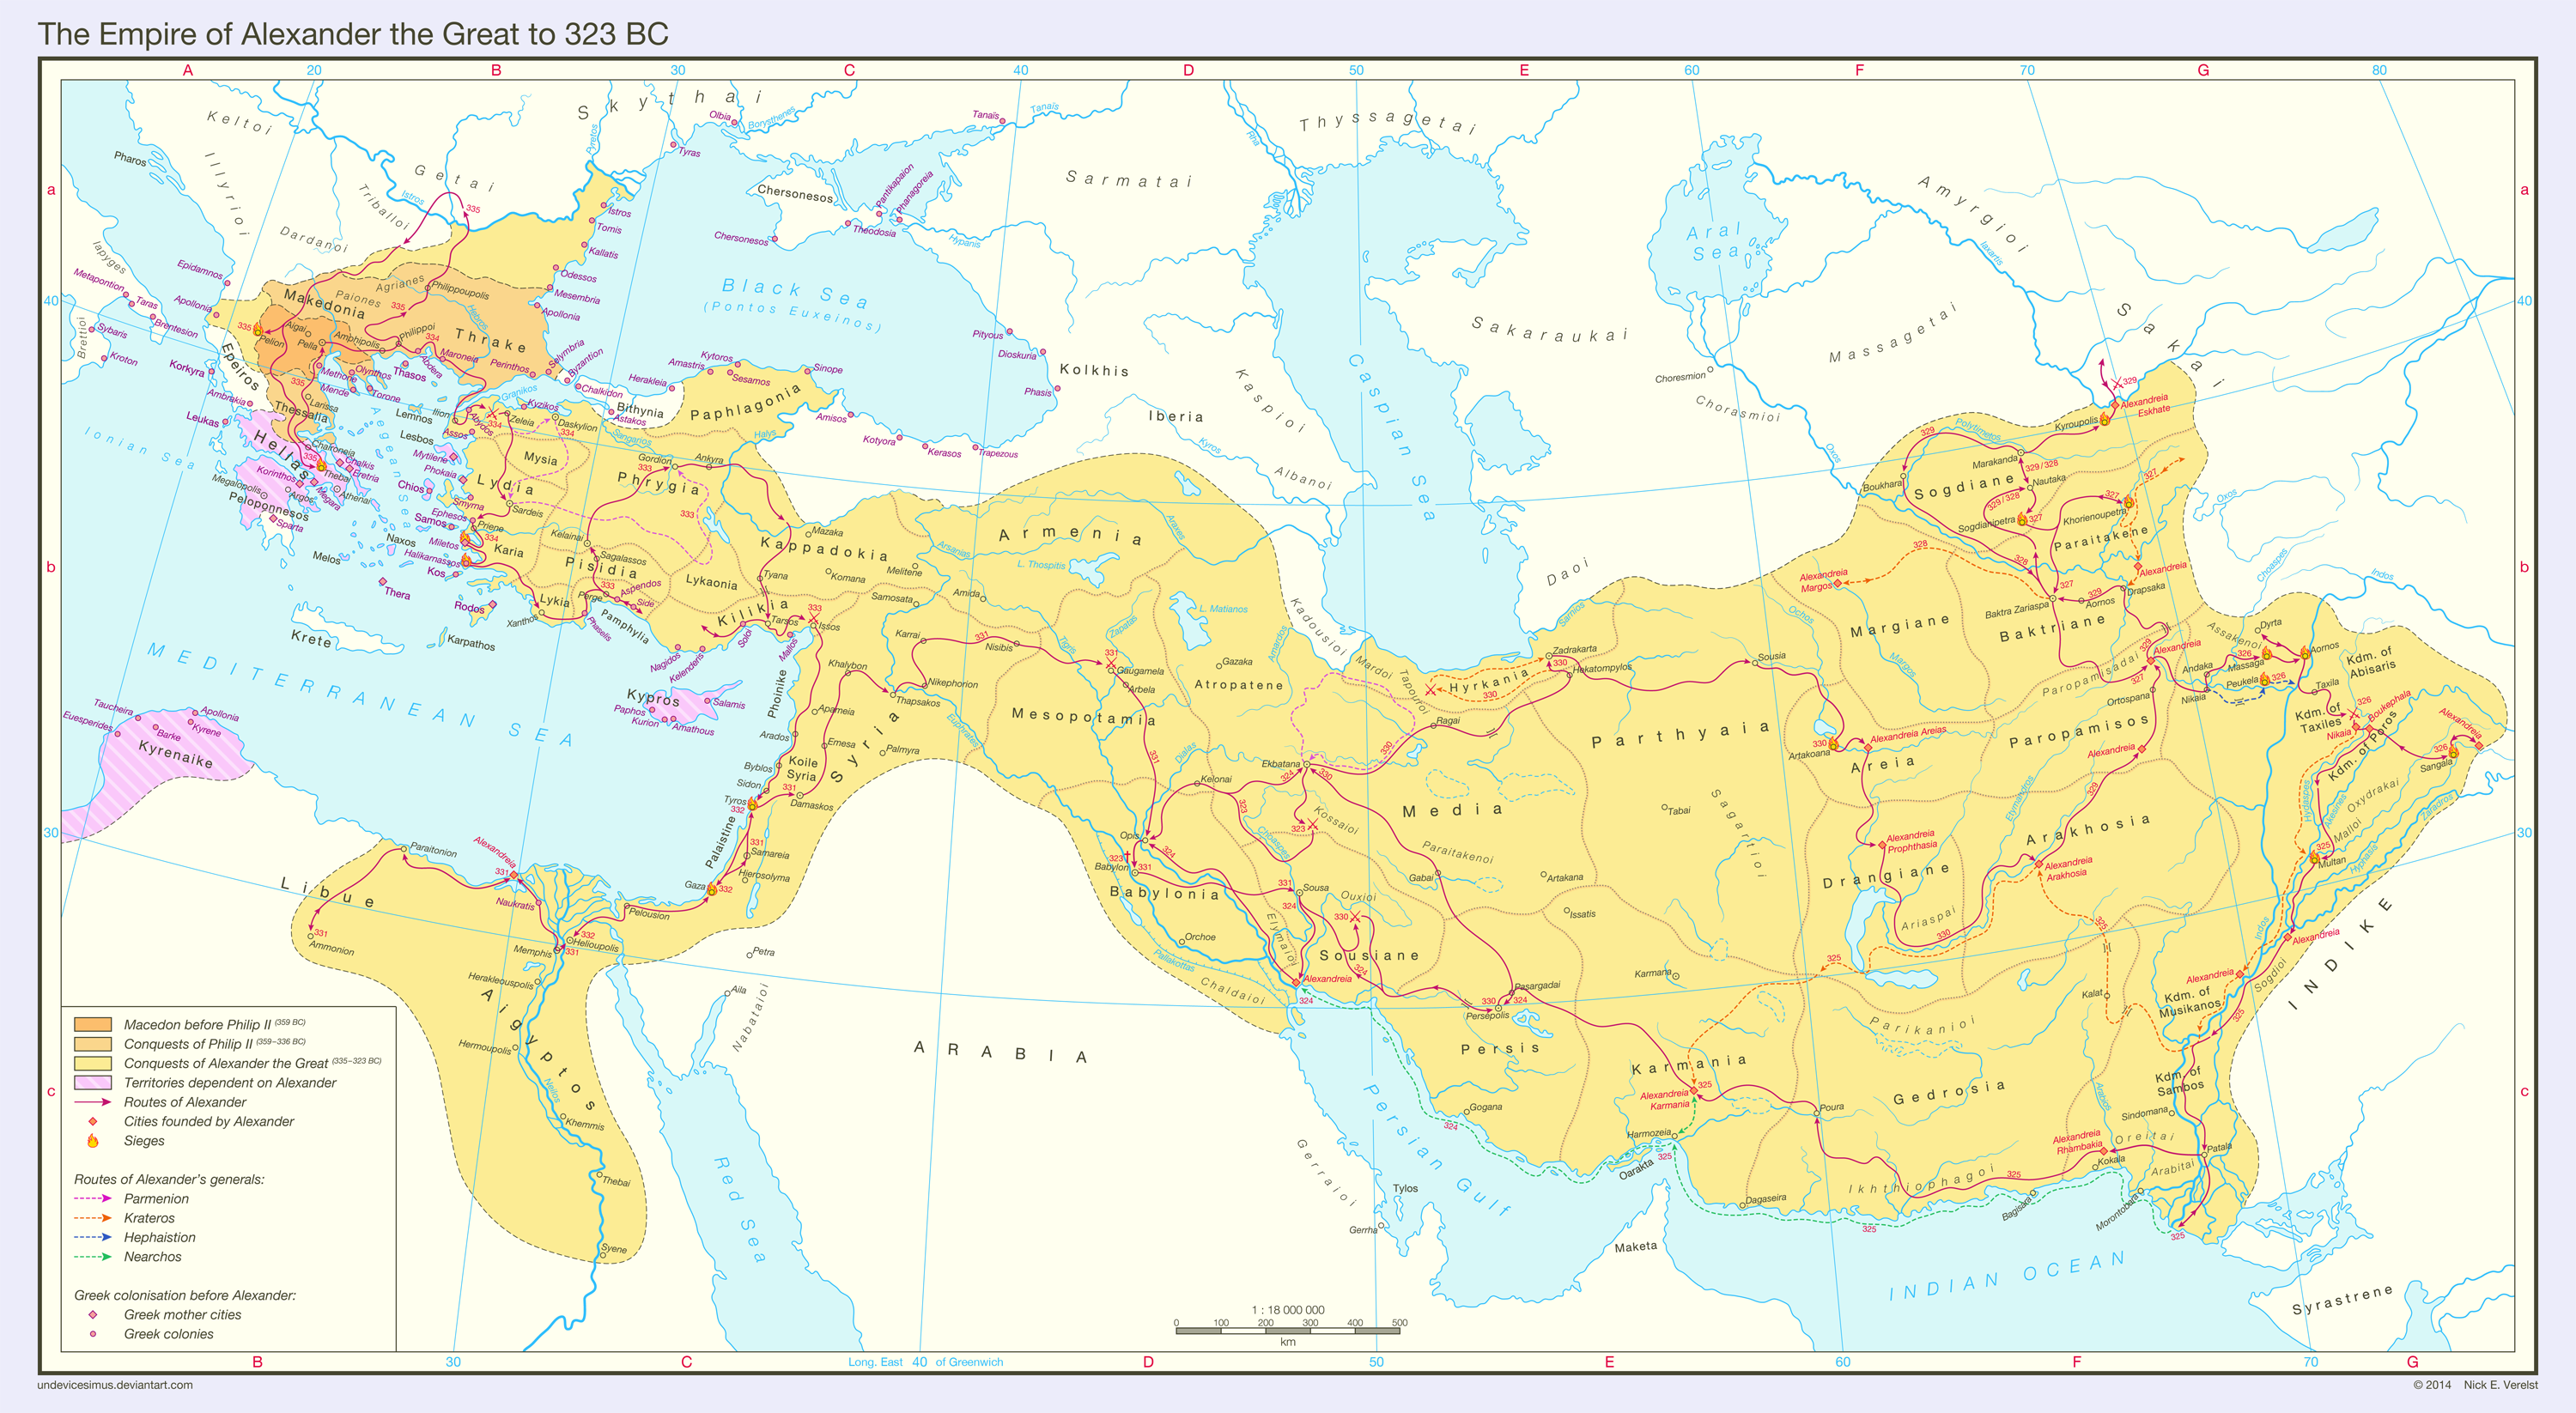 The Empire of Alexander the Great to 323 BC by Undevicesimus